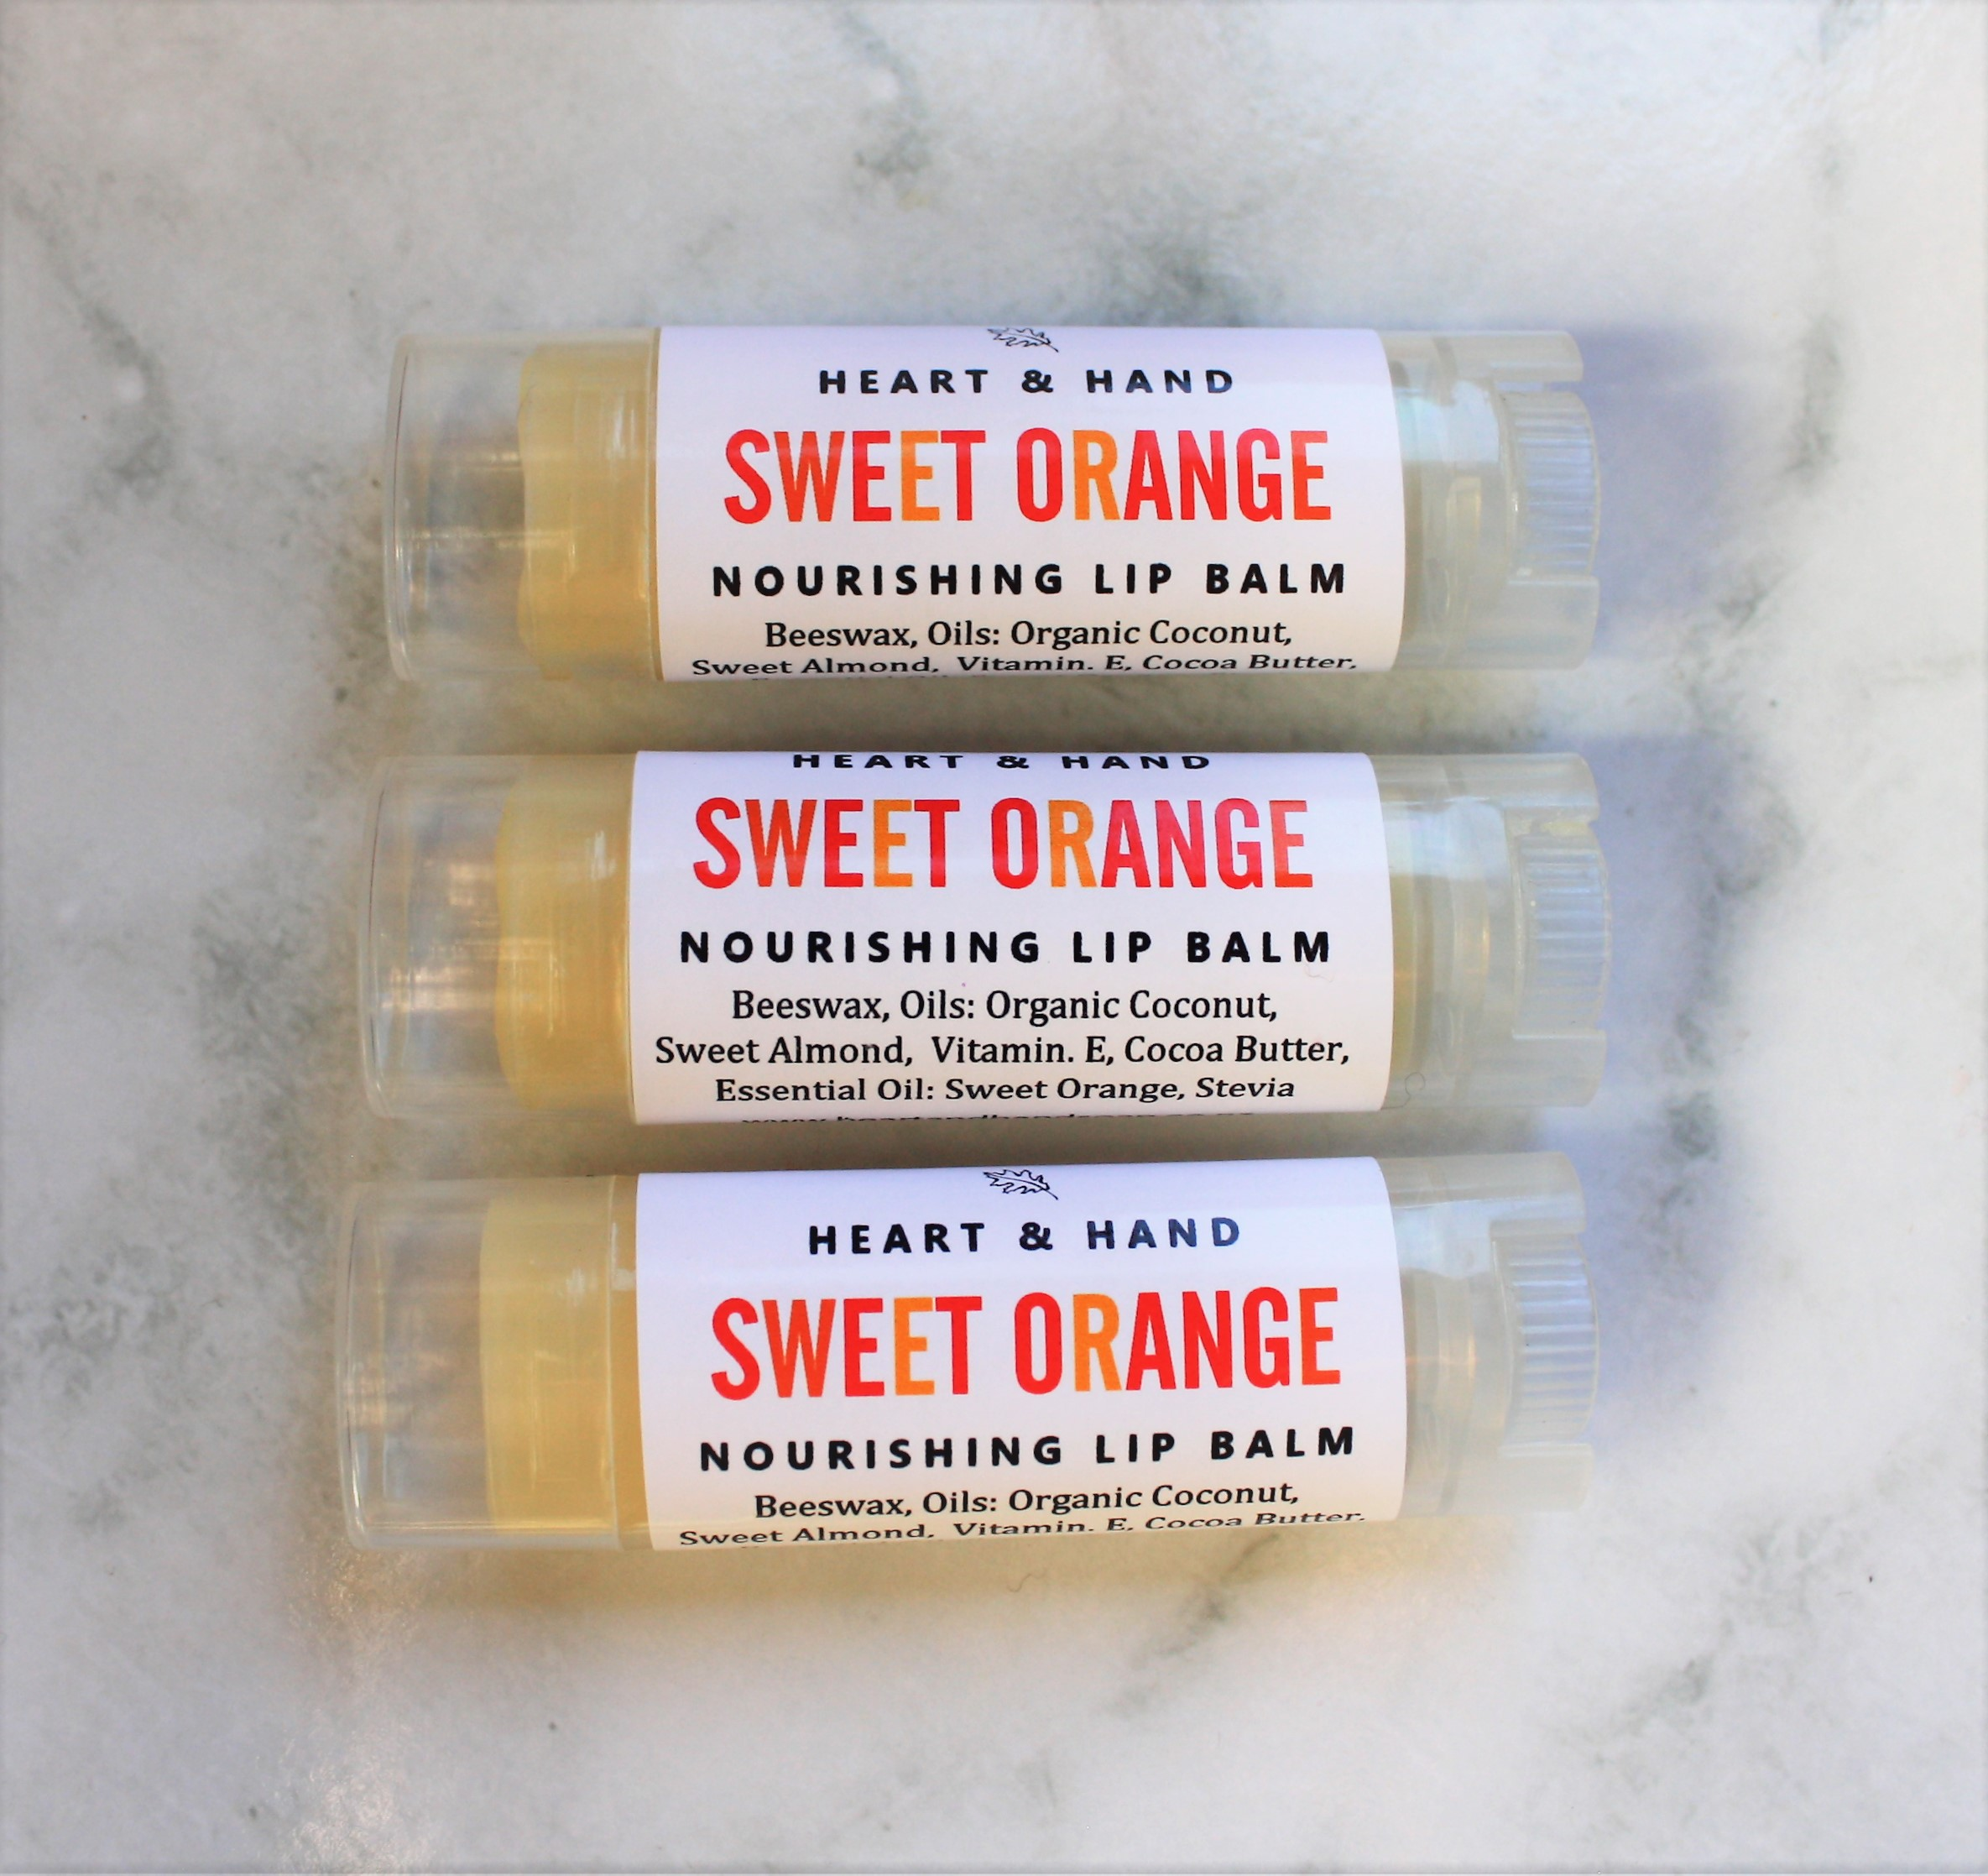 Sweet Orange lip balm